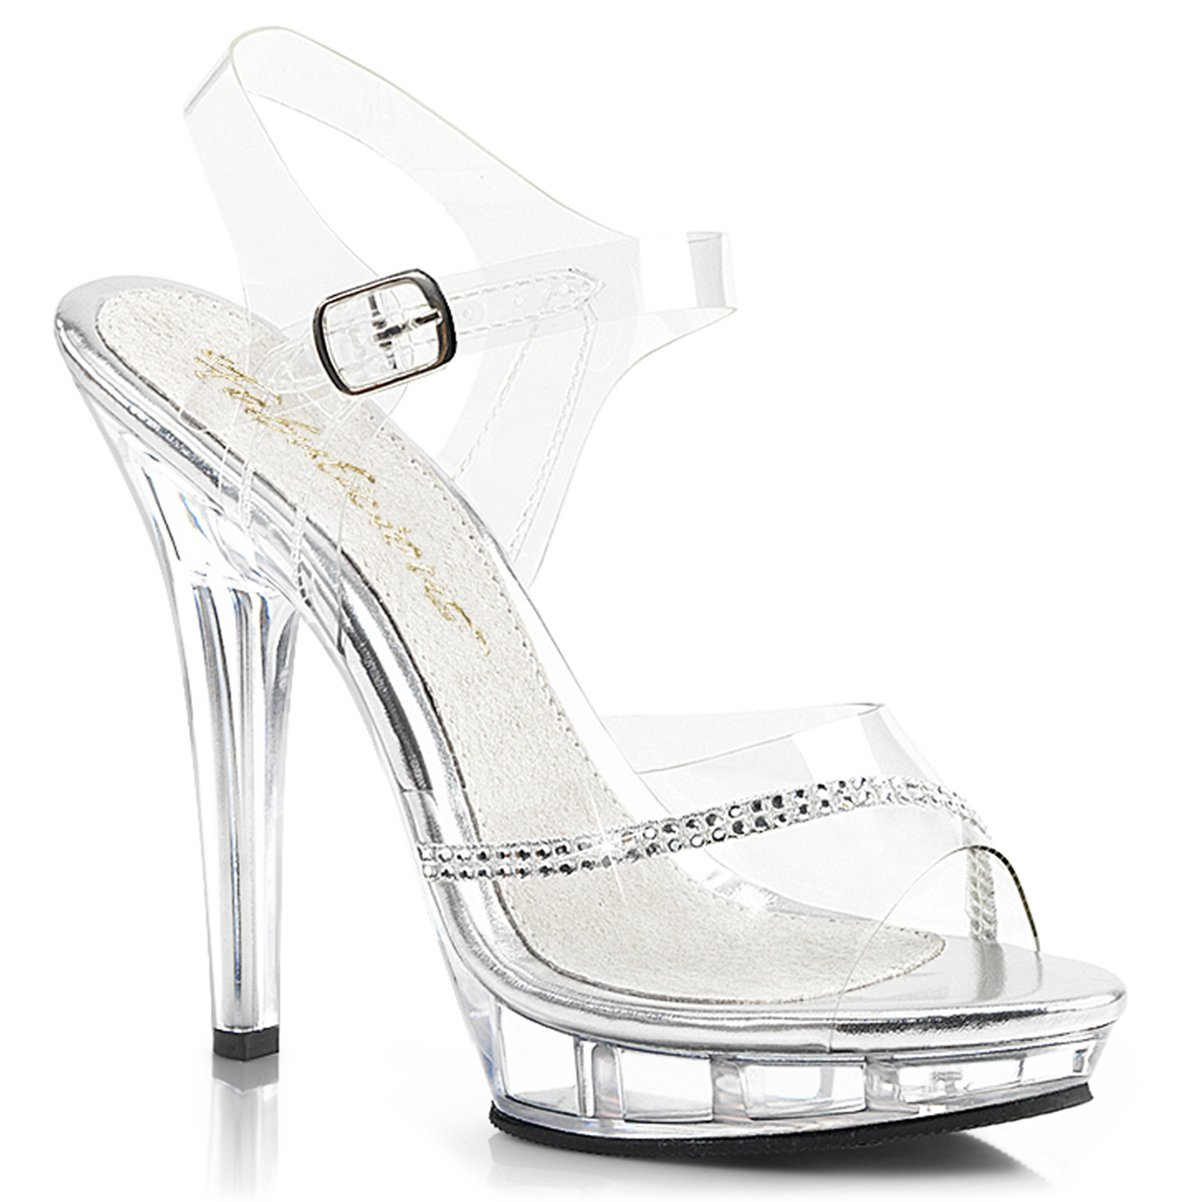 Womens Clear Detail Pageant Shoes with Rhinestone Detail Clear and 5 Inch Clear Heels B00R3I5VE2 5 B(M) US 2092f9